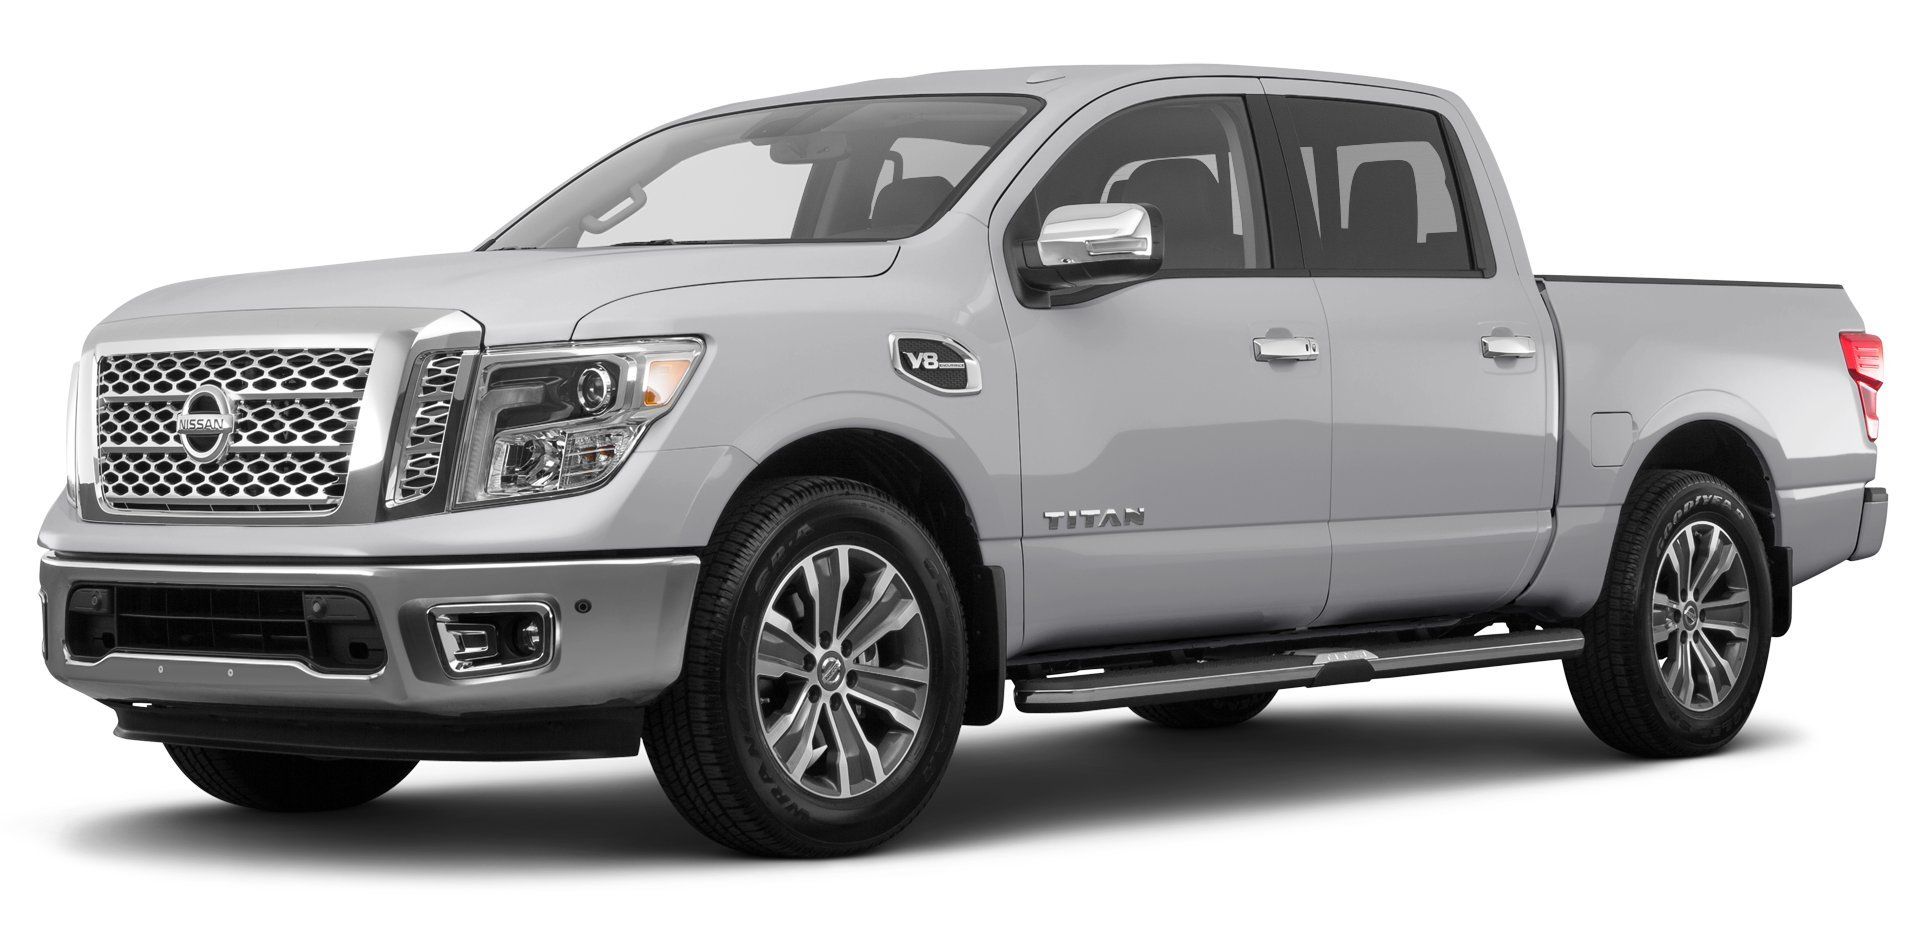 2017 toyota tundra reviews images and specs vehicles. Black Bedroom Furniture Sets. Home Design Ideas